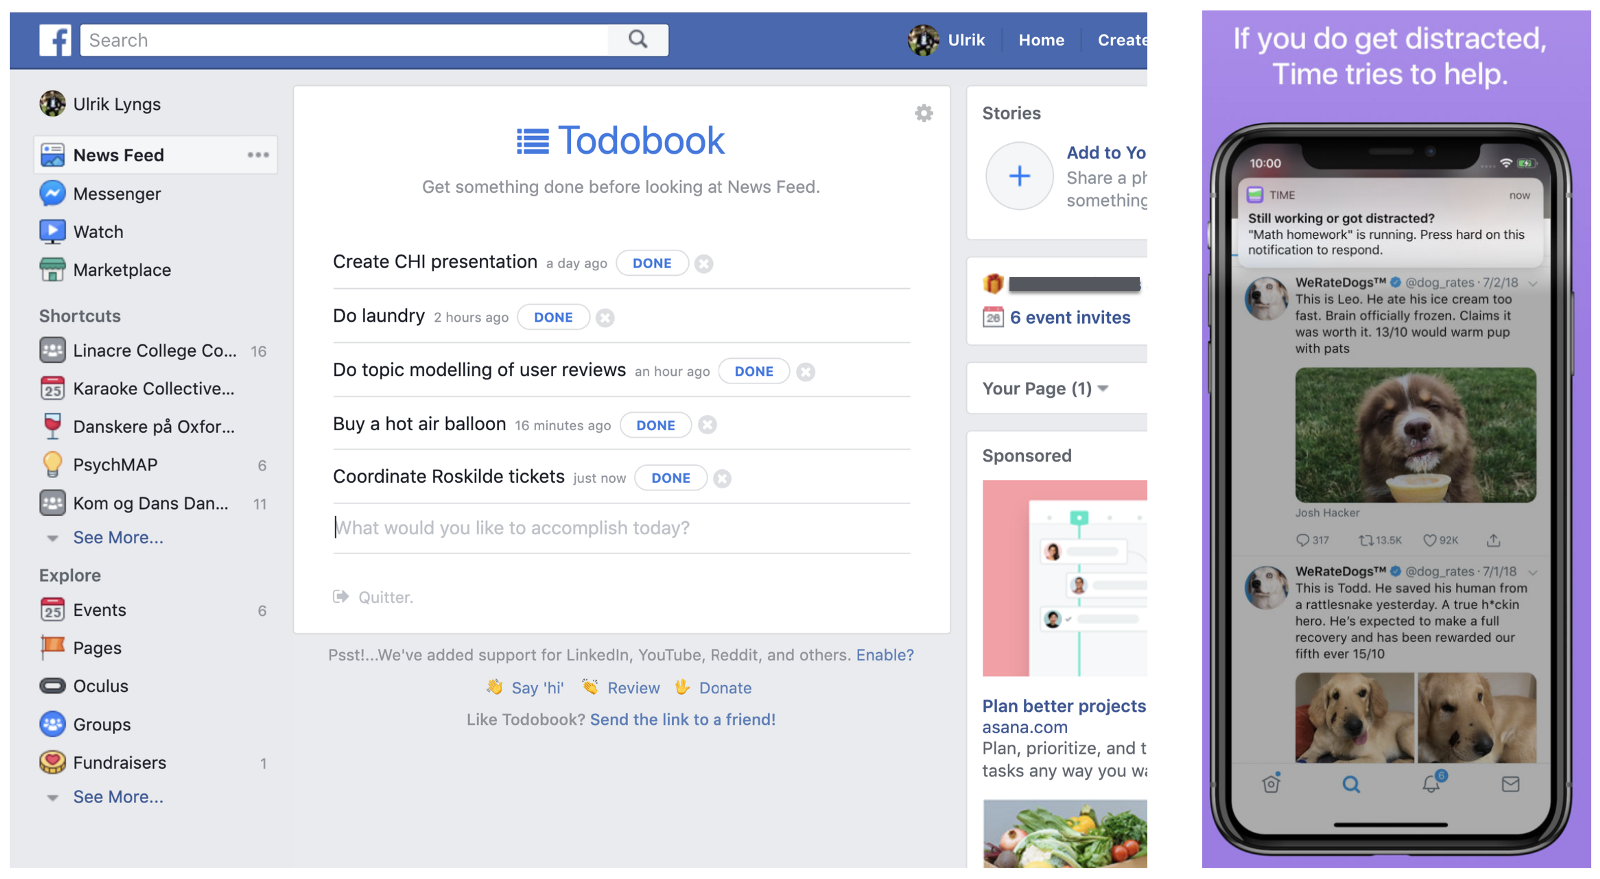 [Todobook](https://chrome.google.com/webstore/detail/todobook/ihbejplhkeifejcpijadinaicidddbde?hl=en) (left) replaces Facebook's newsfeed with a todo-list; the iOS app [Time](https://itunes.apple.com/gb/app/time-defeat-distraction/id1313017655?mt=8&ign-mpt=uo%3D4) (right) is a todo-list which provides continual task reminders if the user leaves the app.